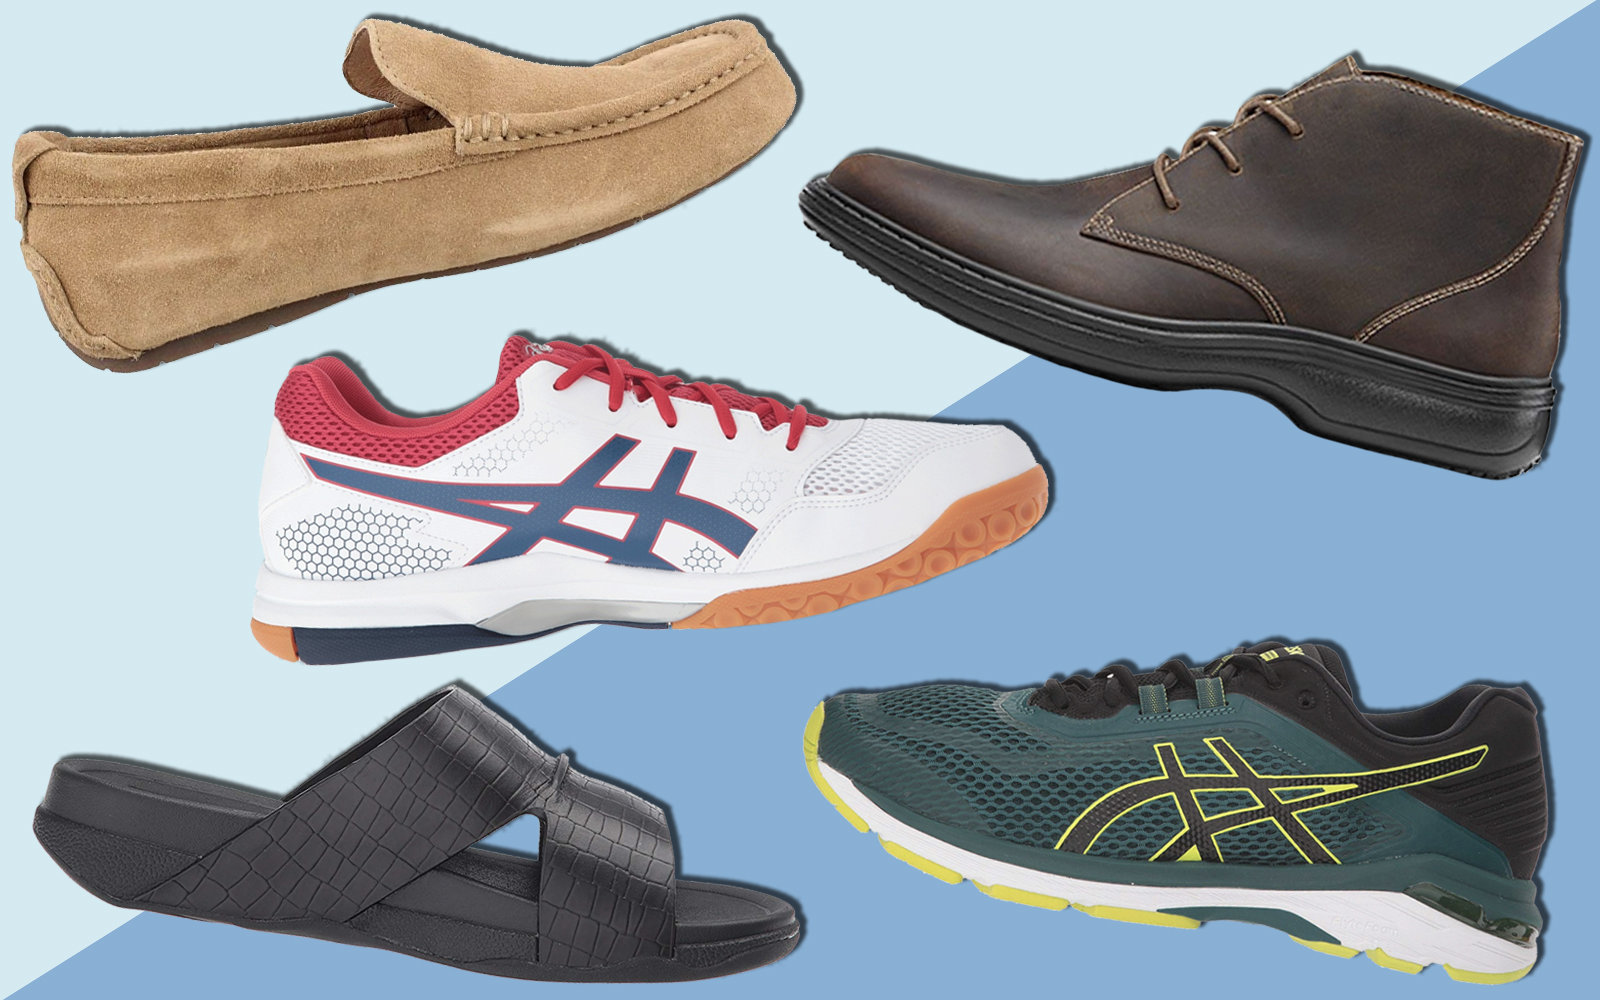 best-comfy-mens-shoes-APMA-seal-of-approval-APMAMENSSHOES1018